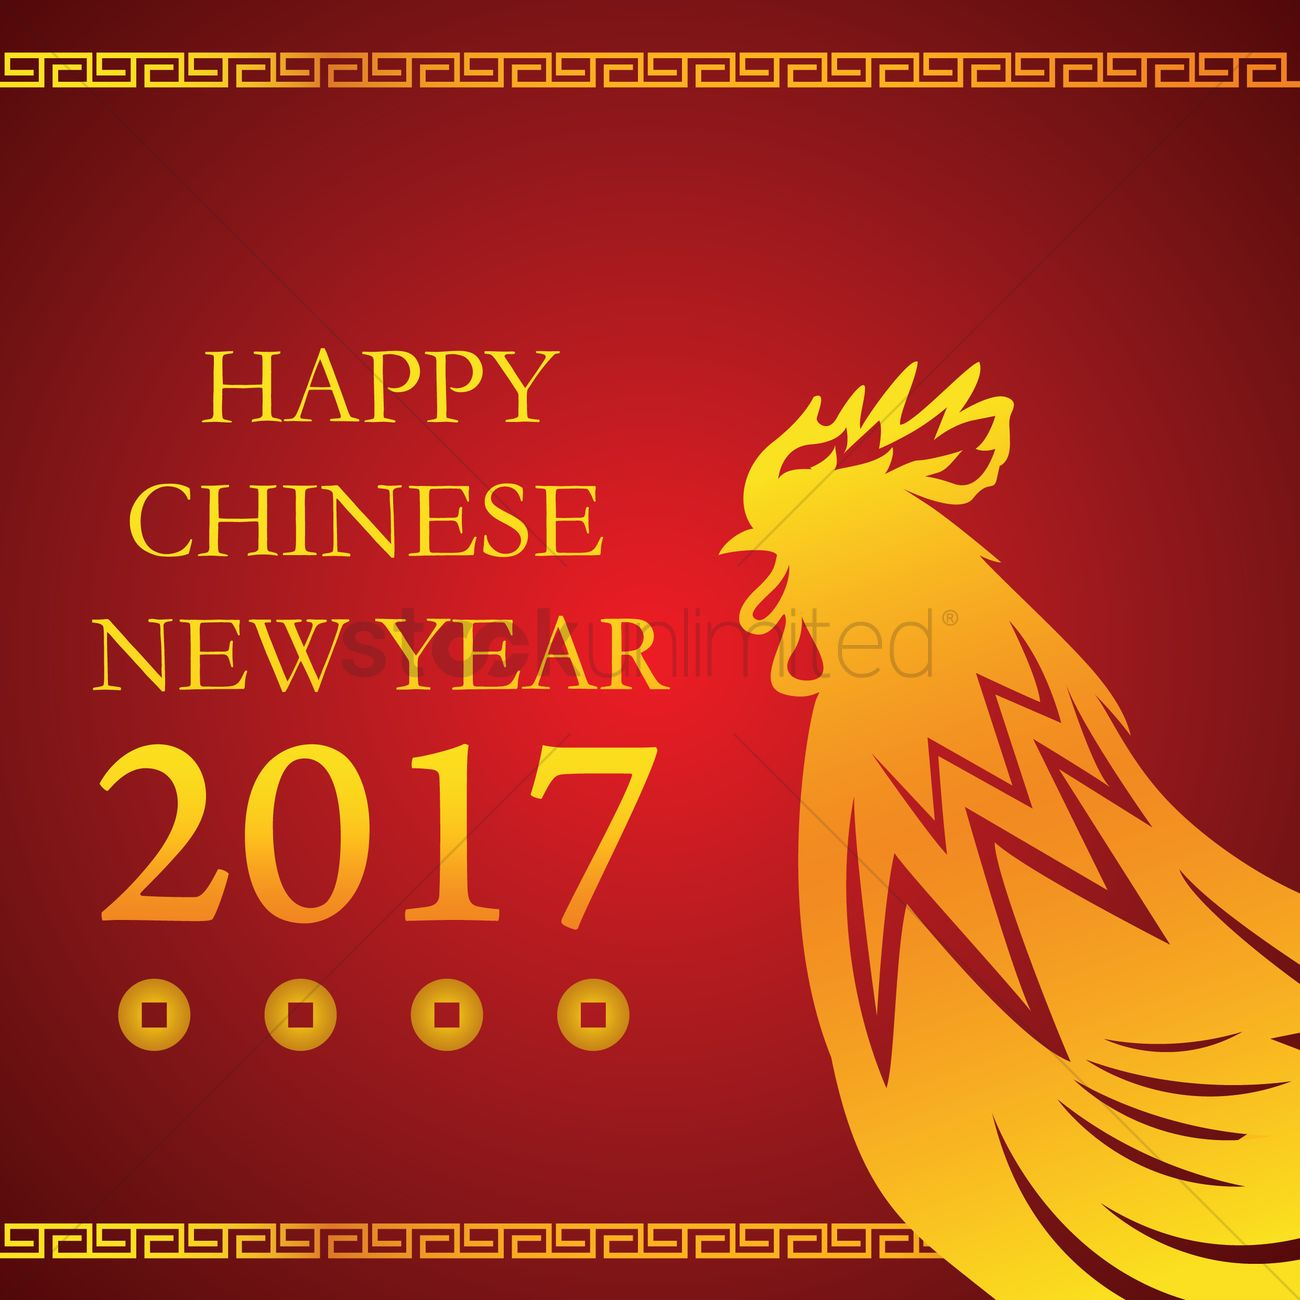 Happy chinese new year 2017 with rooster Vector Image - 1935022 ...